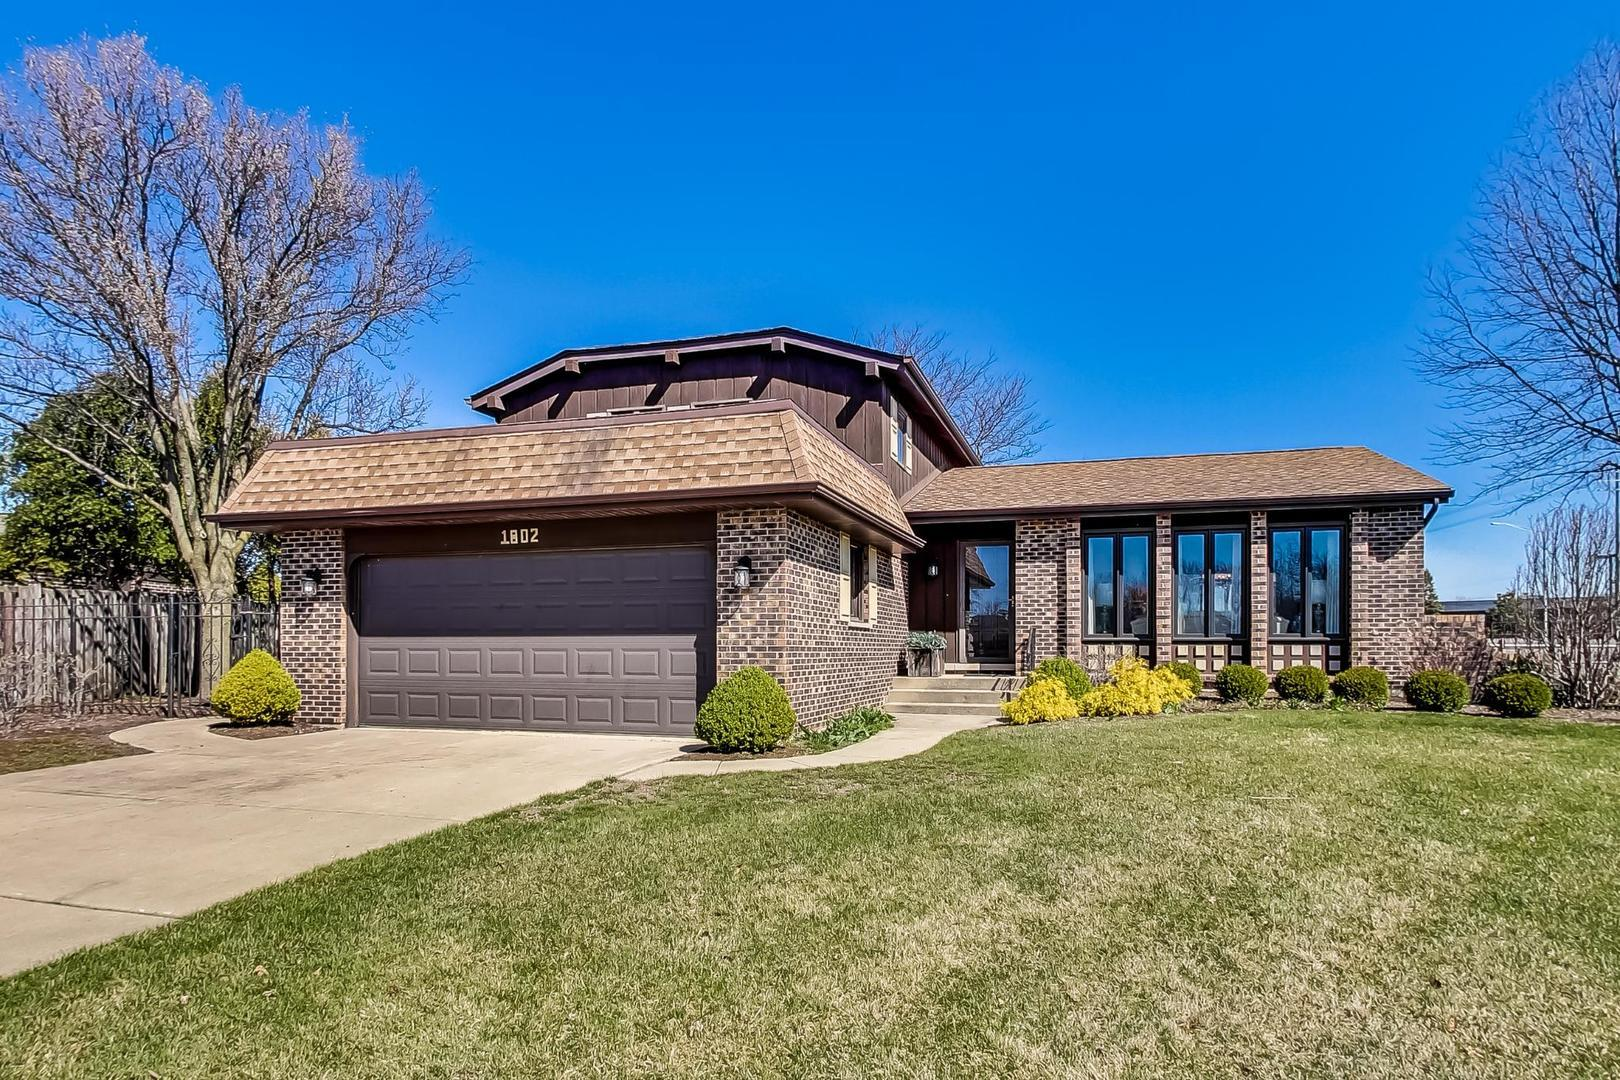 1802 Kings Point Drive N, Addison, IL 60101 - #: 11047148